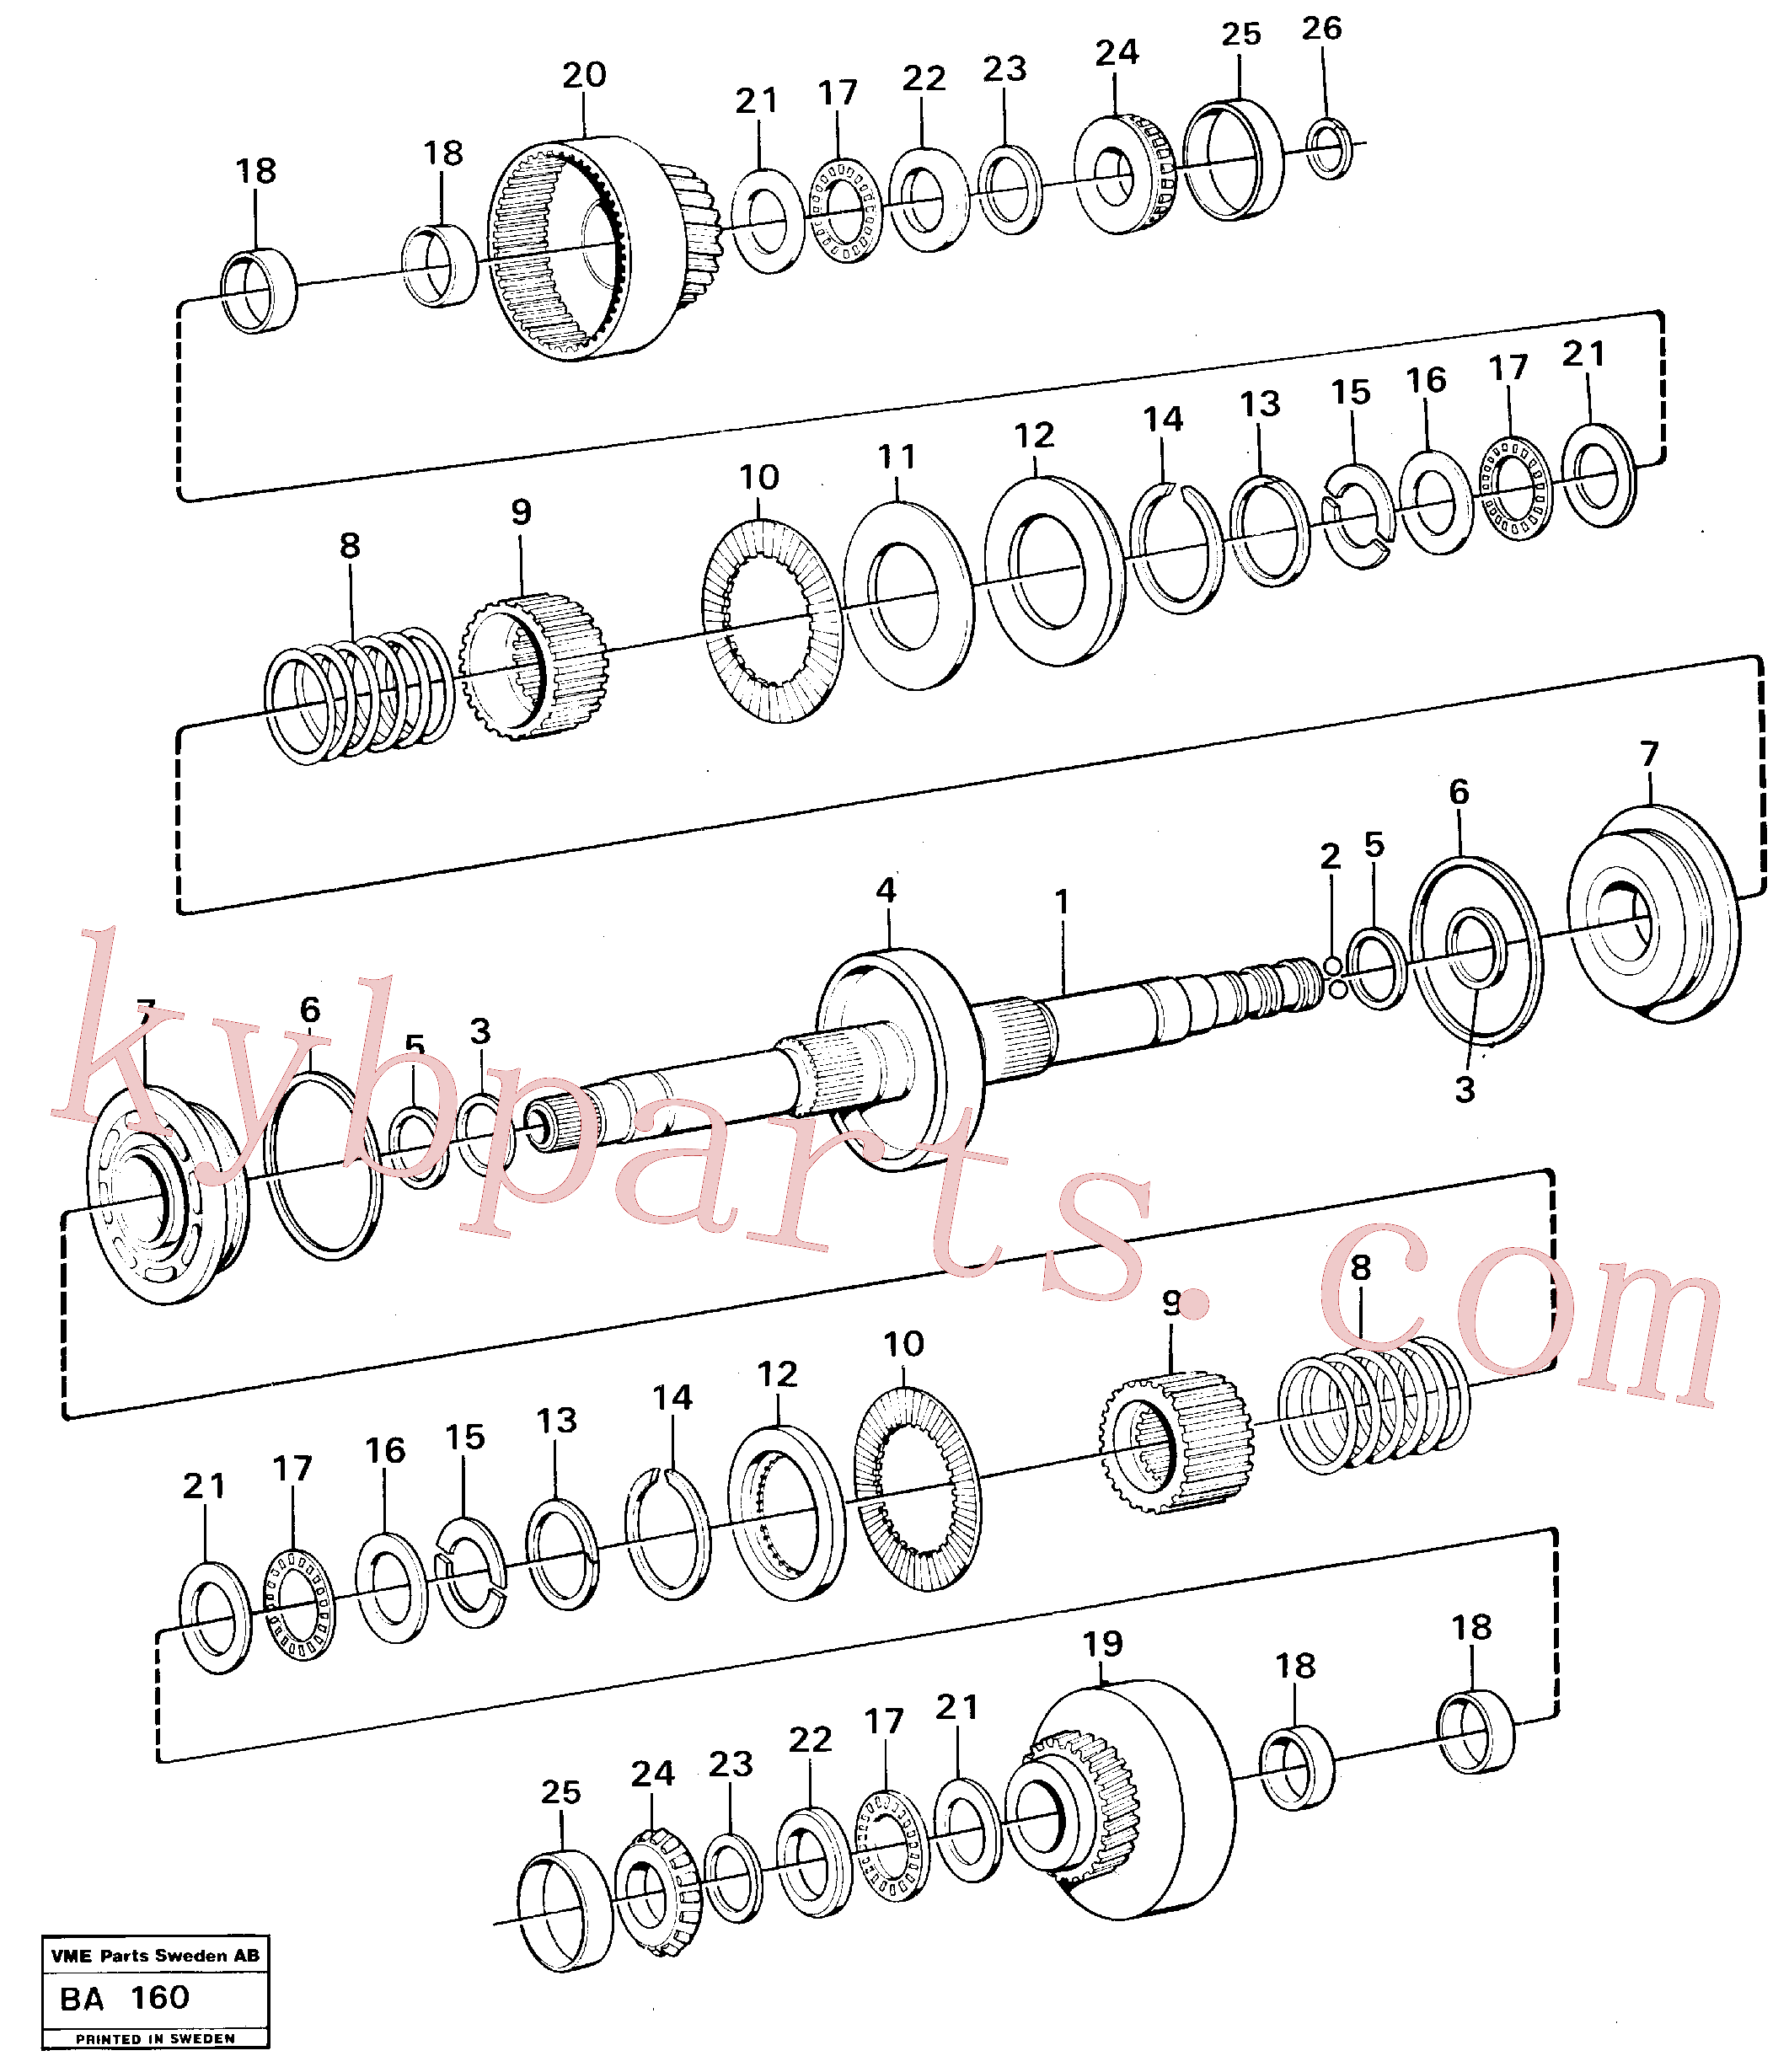 VOE4720797 for Volvo Clutches forward and reverse(BA160 assembly)